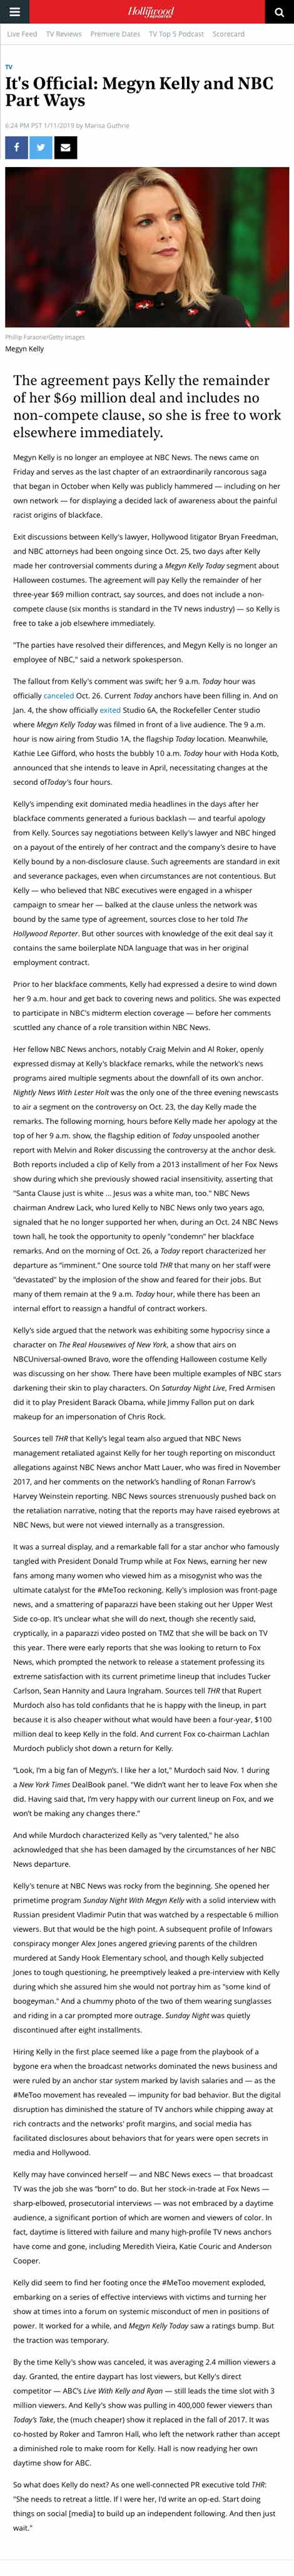 It's Official: Megyn Kelly and NBC Part Ways - article by hollywoodreporter.com - PDF